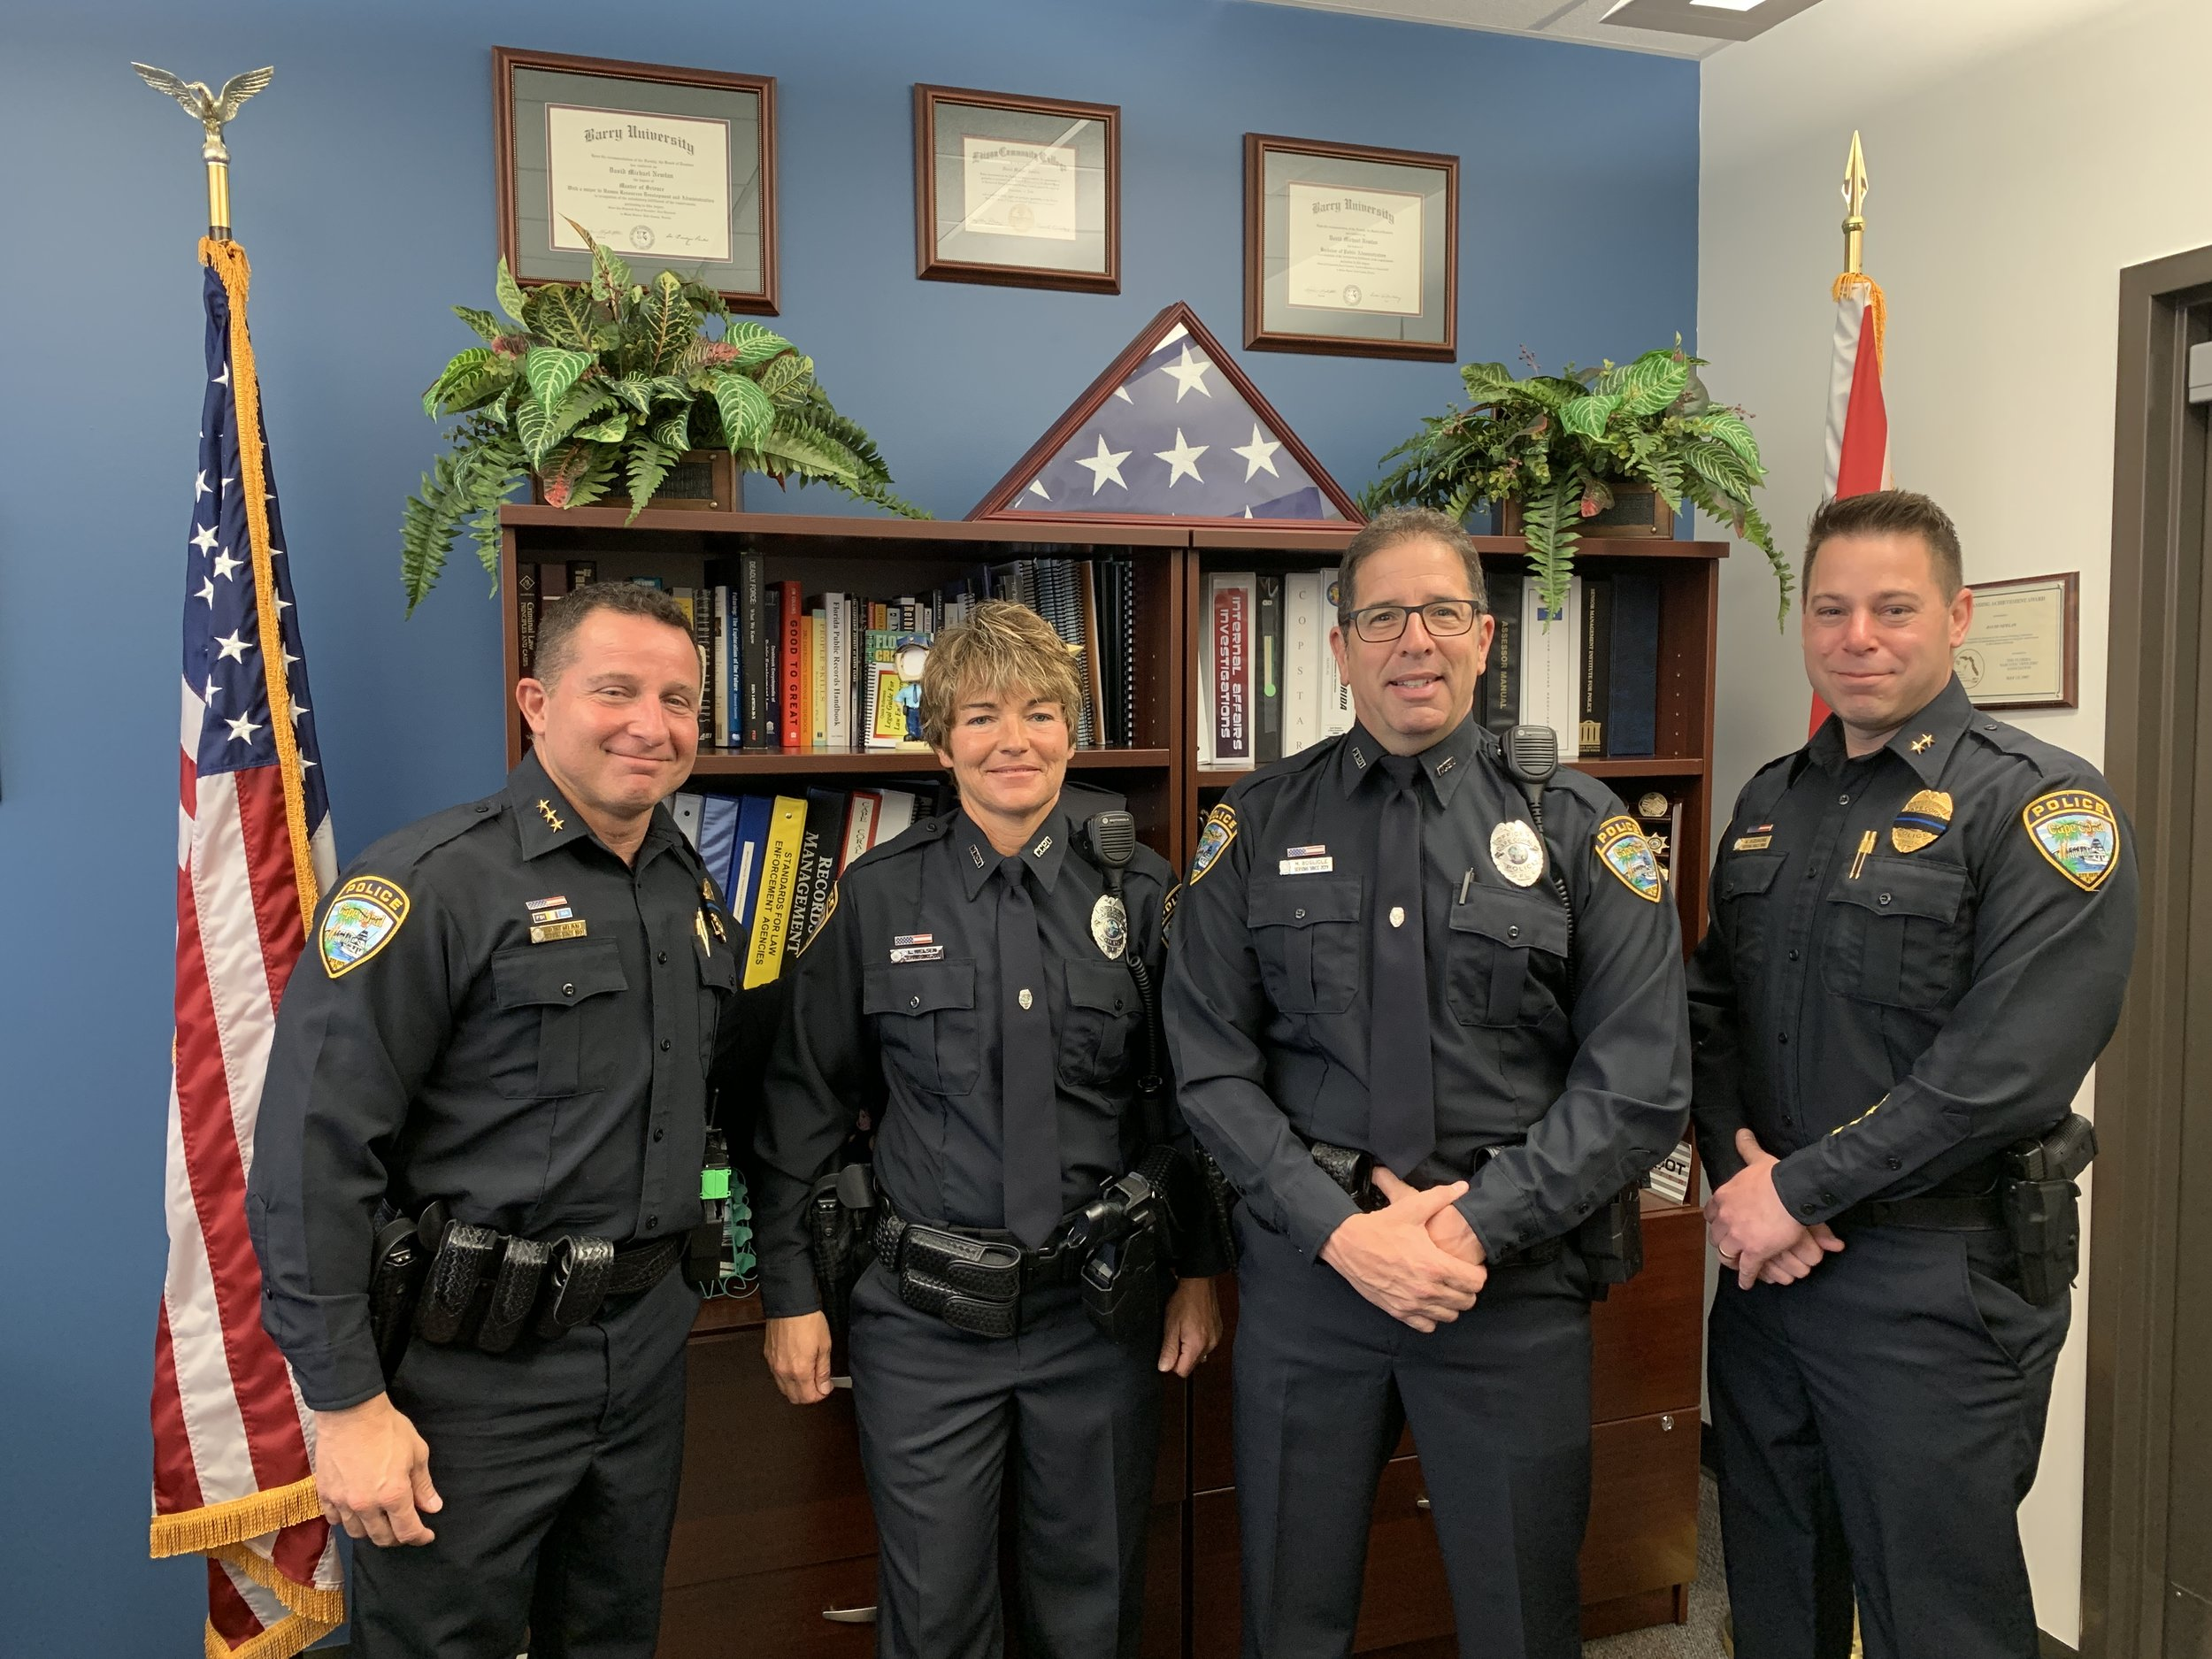 From Left to Right: Chief Dave Newlan, Officer Lori Nielsen, Officer Michael Bogliole, and Deputy Chief Anthony Sizemore